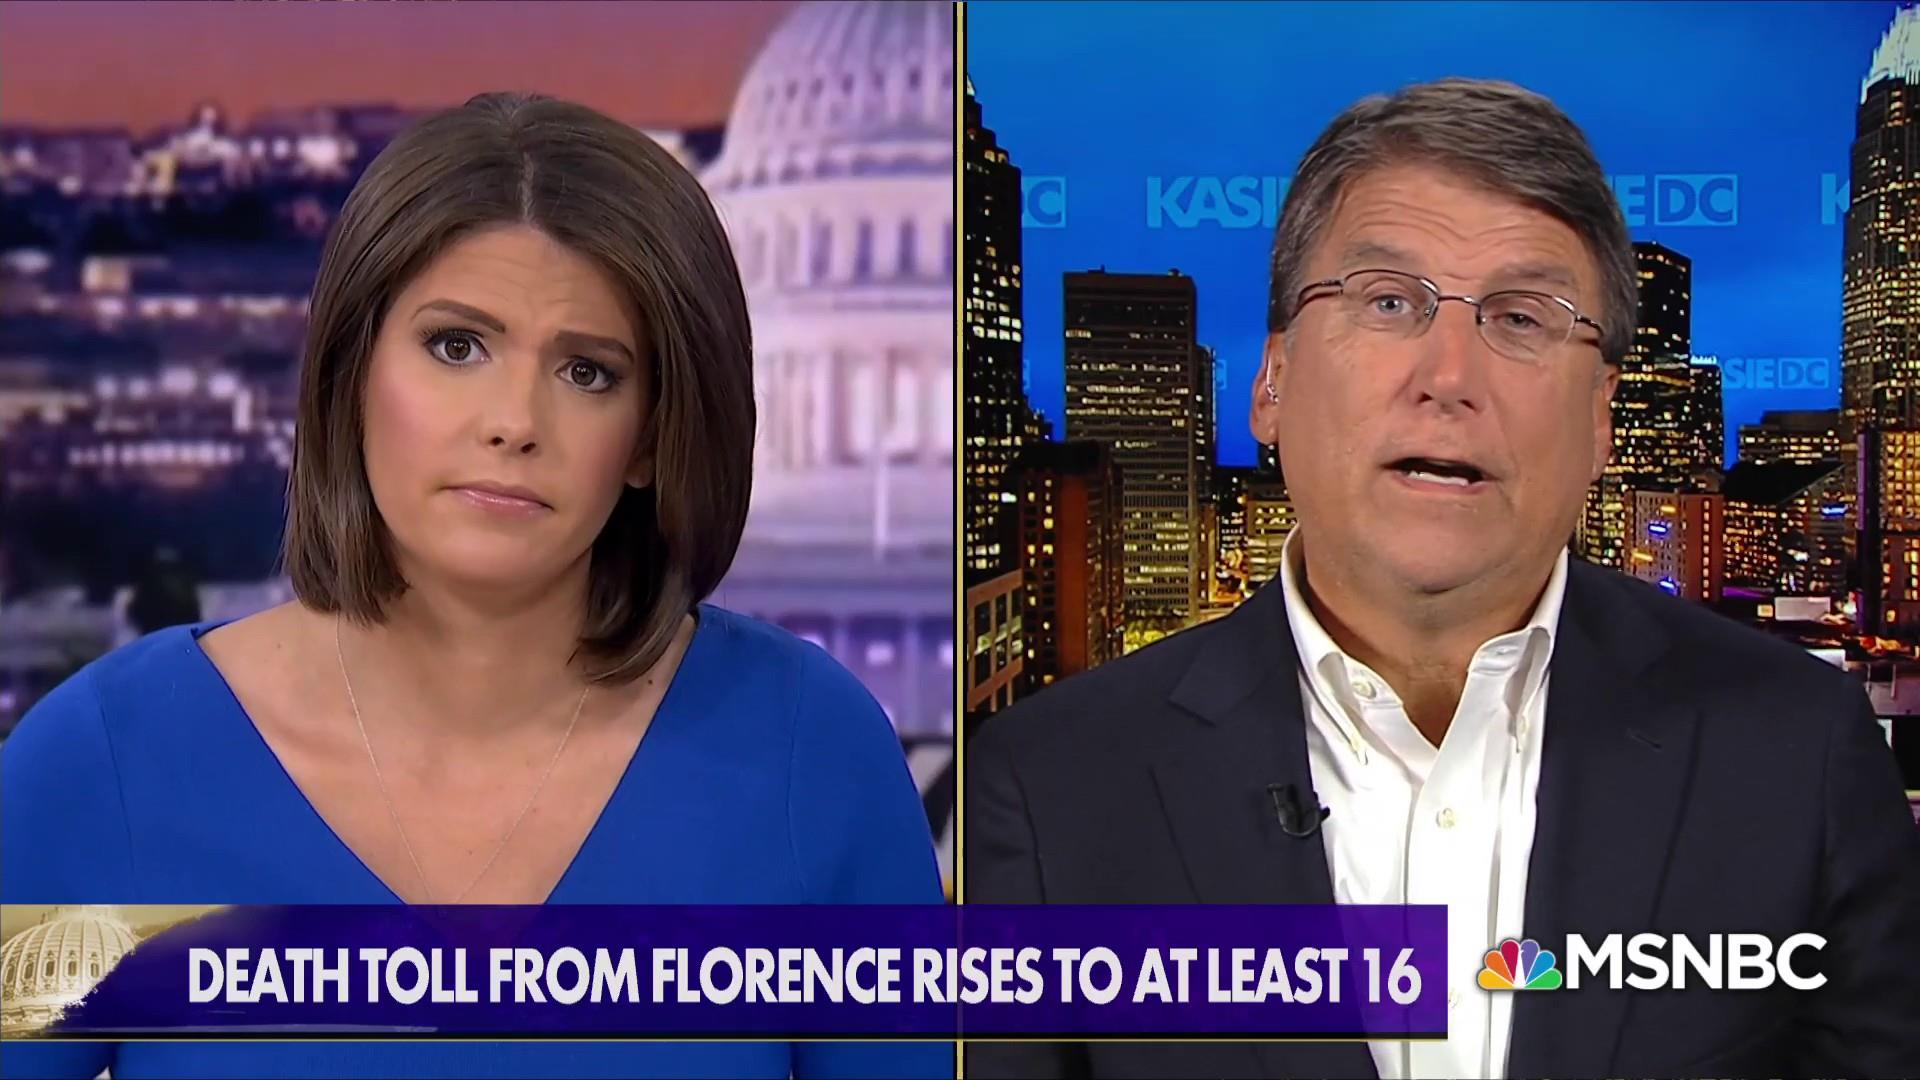 Former NC Gov. McCrory: Florence recovery 'very difficult, long, drawn-out period'